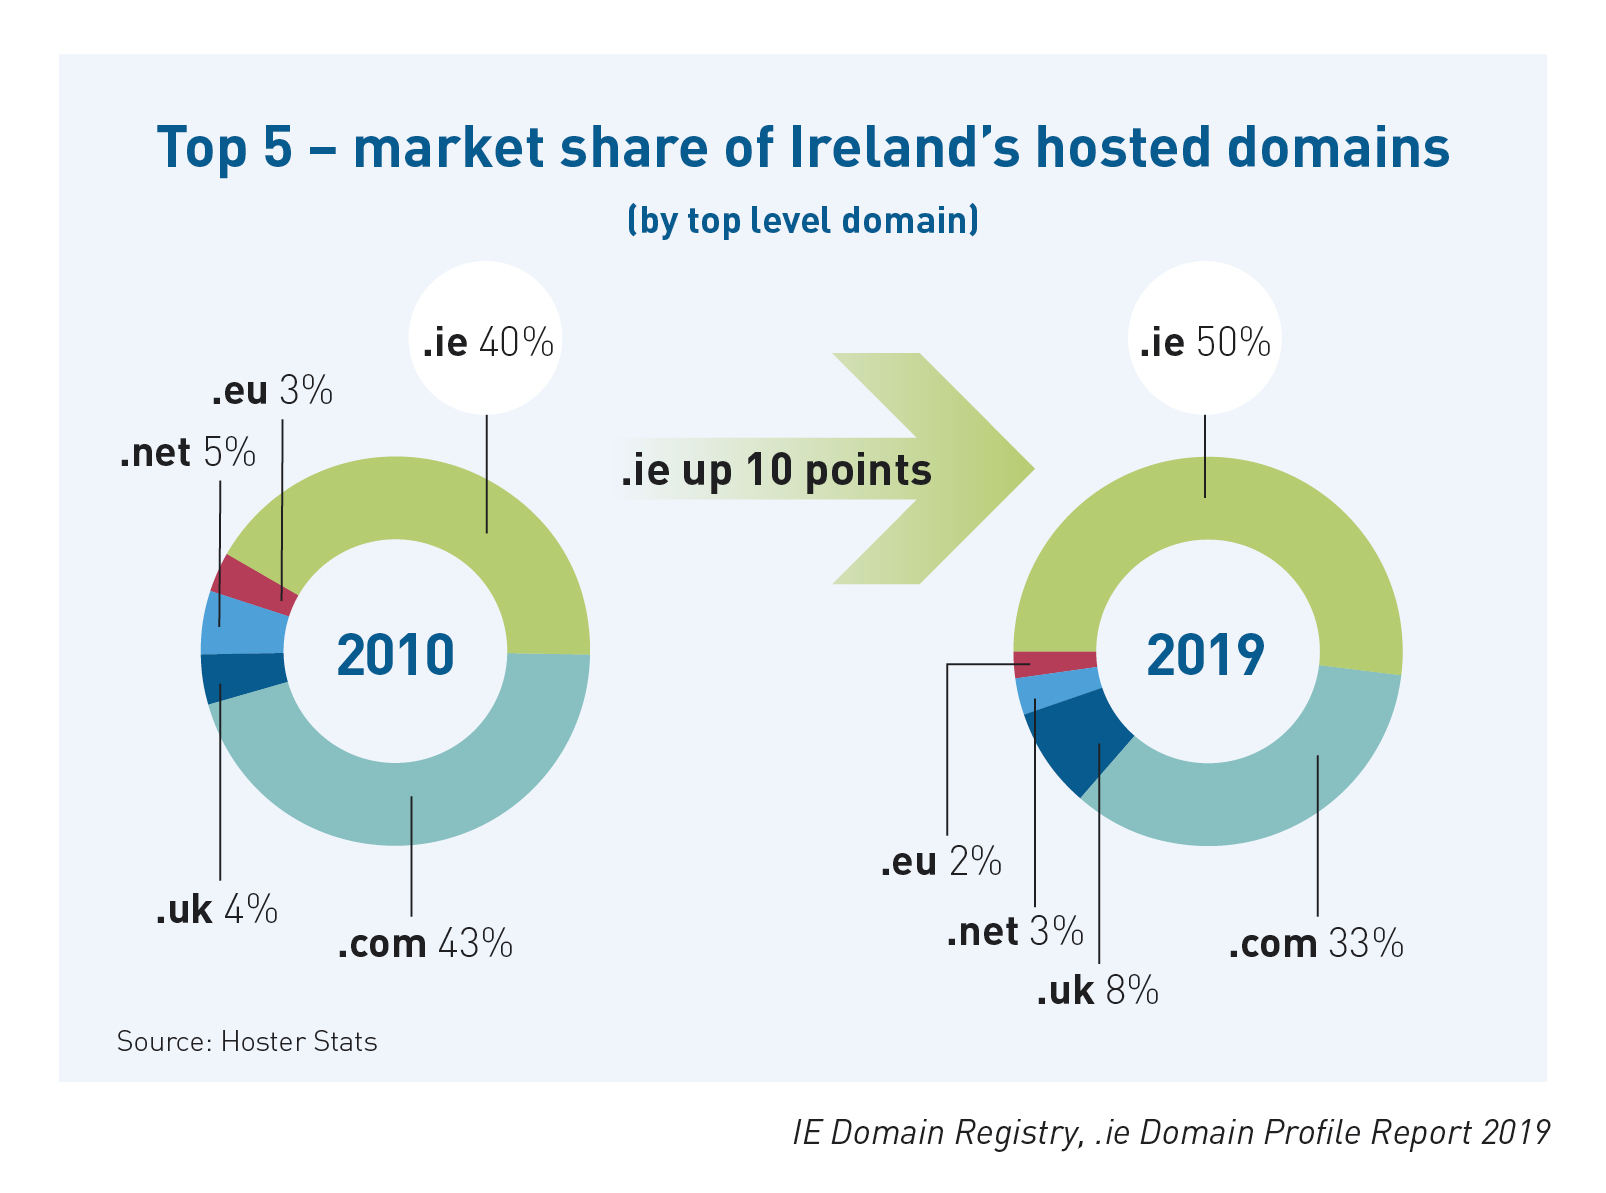 IE Domain Registry .ie DPR 2019 Market Share